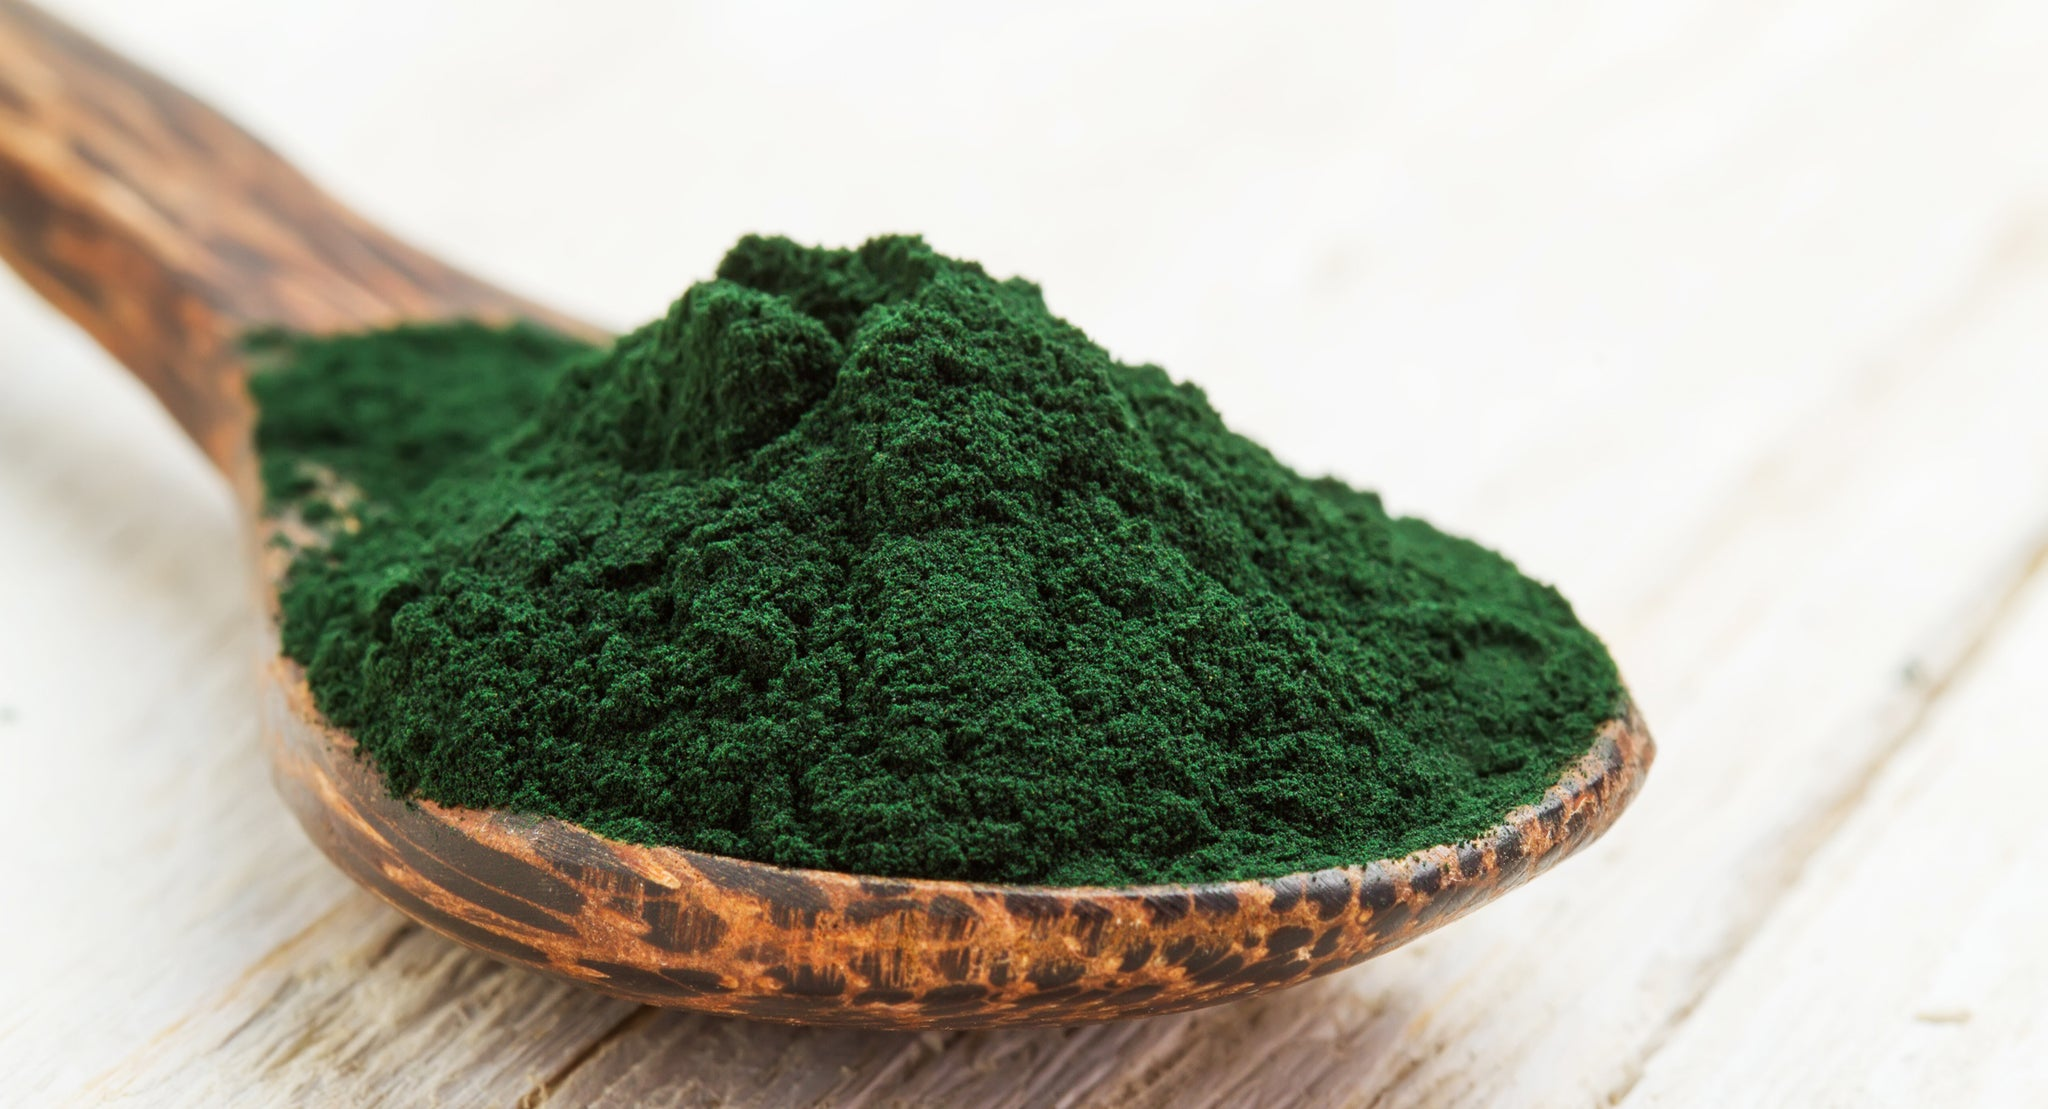 Spirulina Extract - Could Algae be Good for Your Skin?